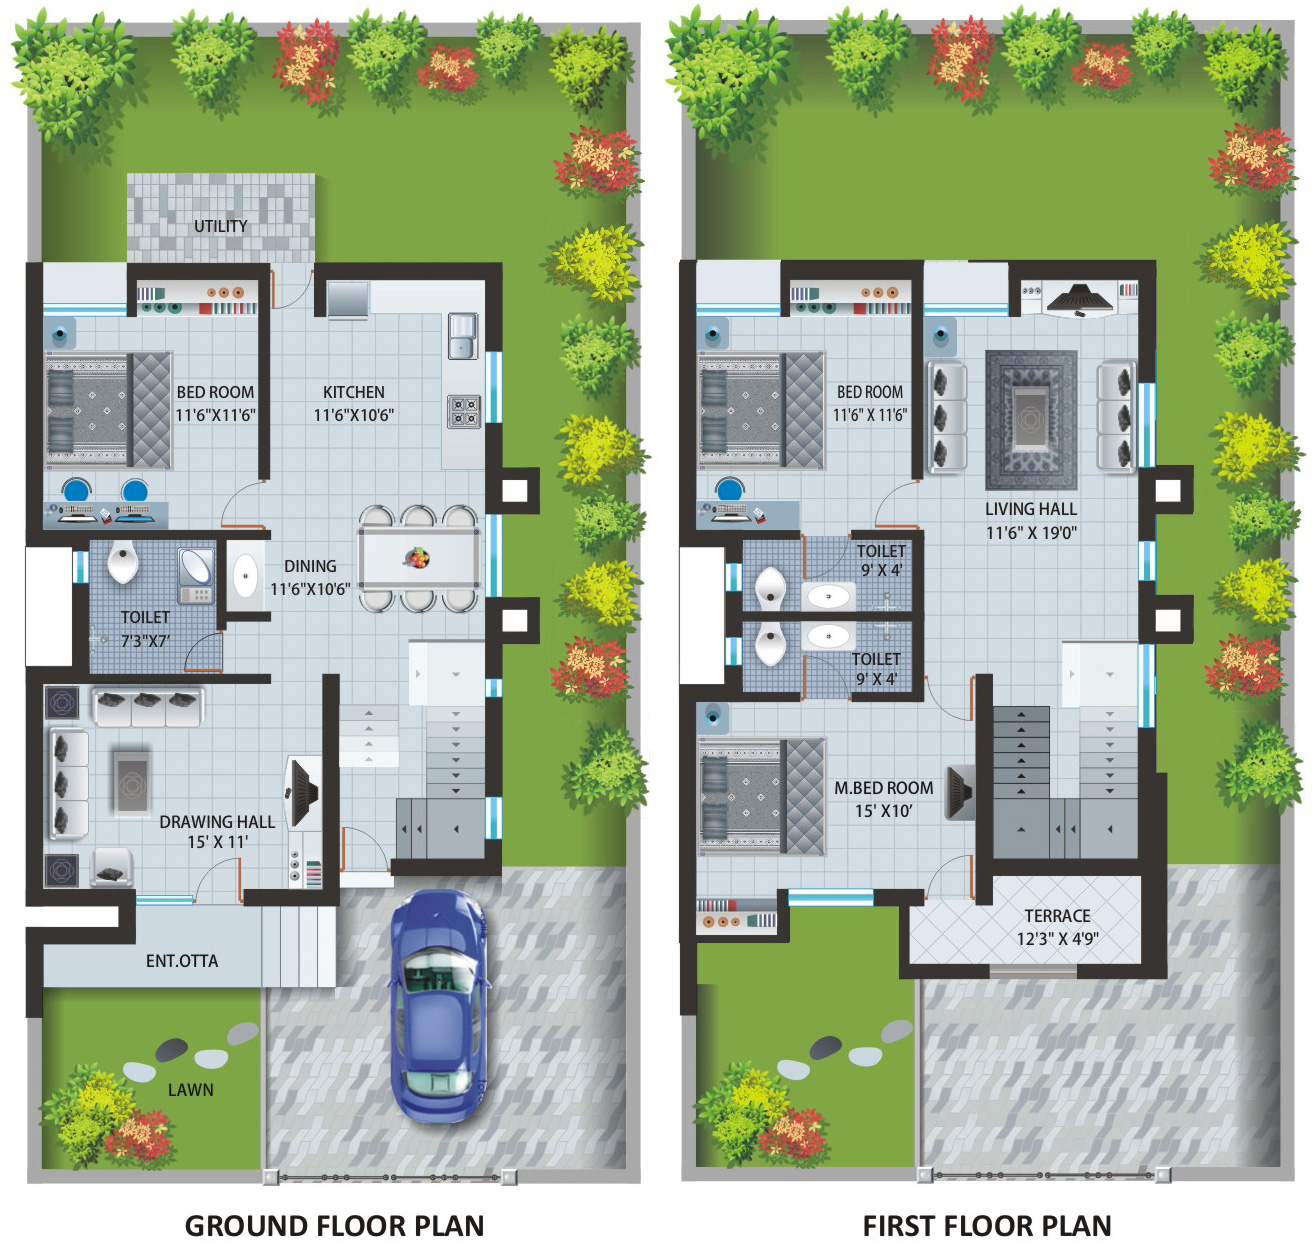 Bungalow 3d Floor Plan: Bungalow House Plans One Story Bungalow Floor Plans